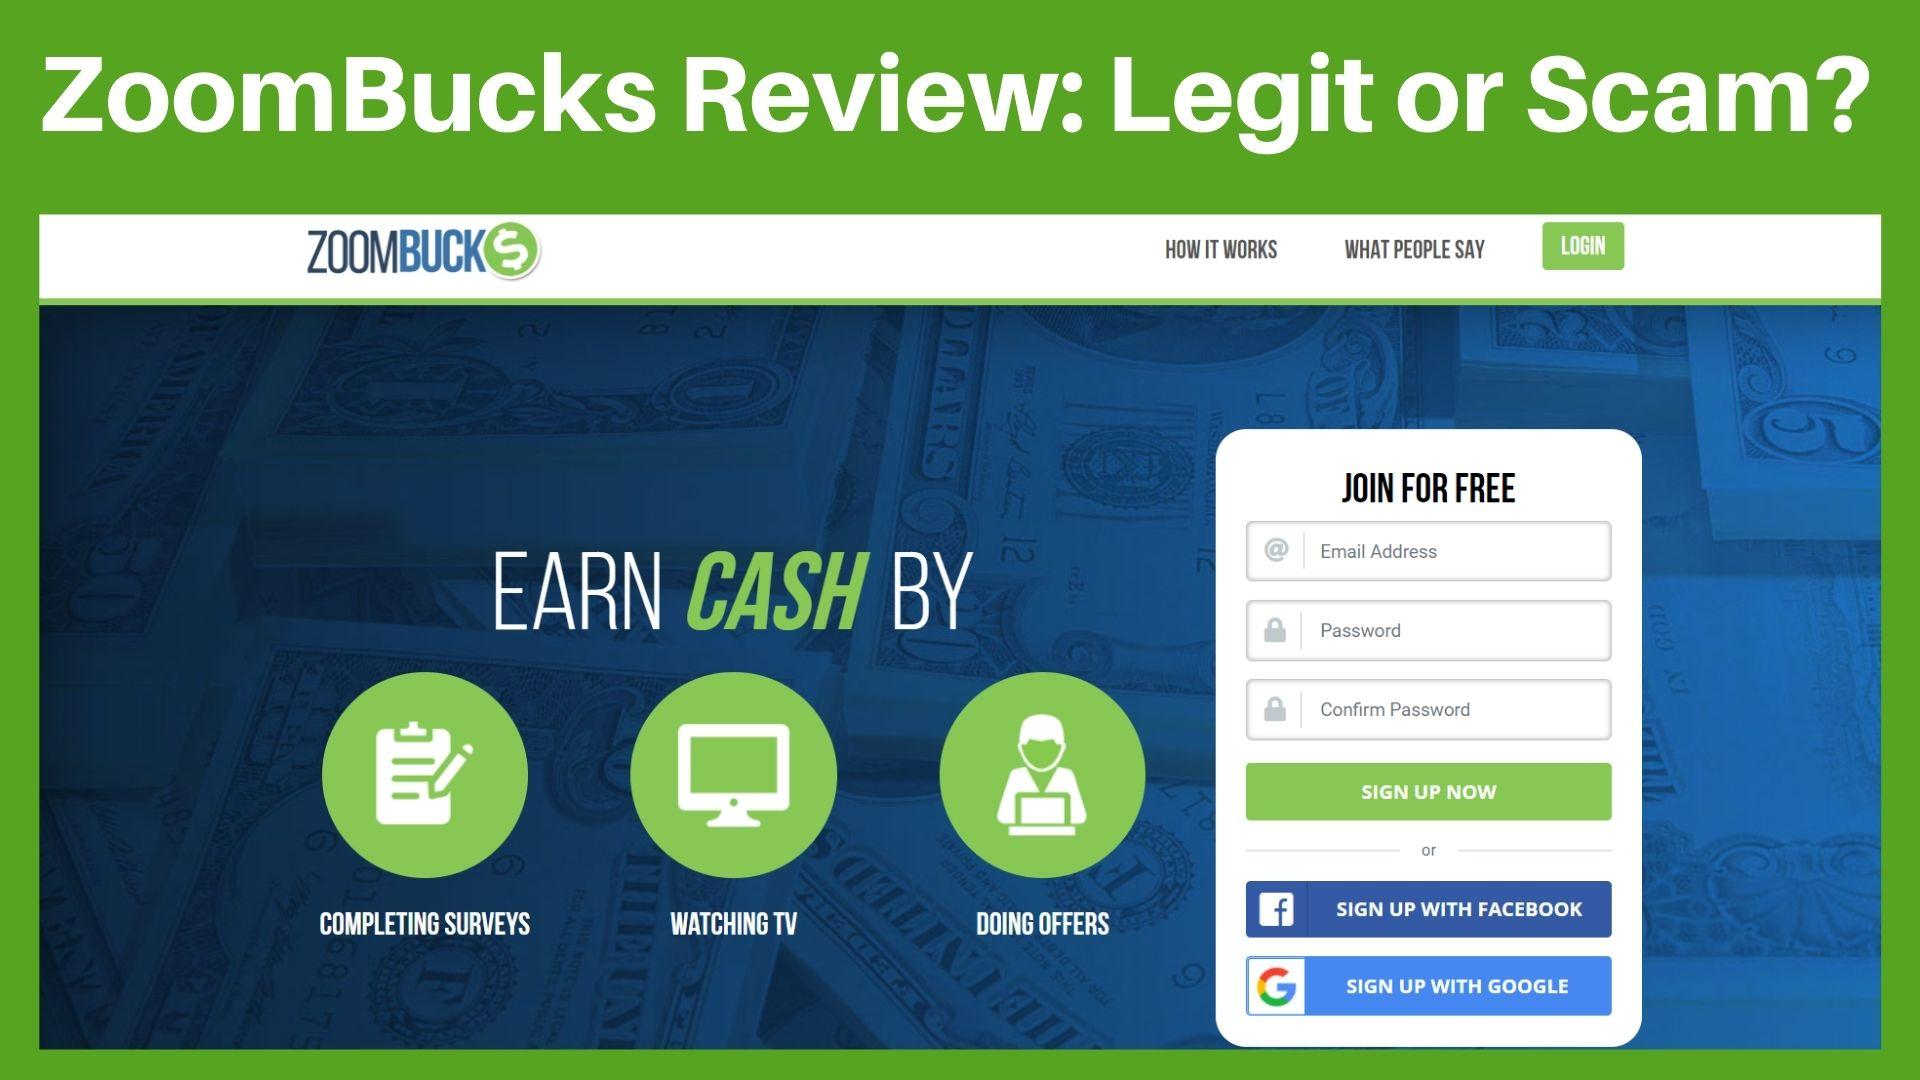 ZoomBucks Review: Is It Just A Waste Of Time? (Truth Exposed)